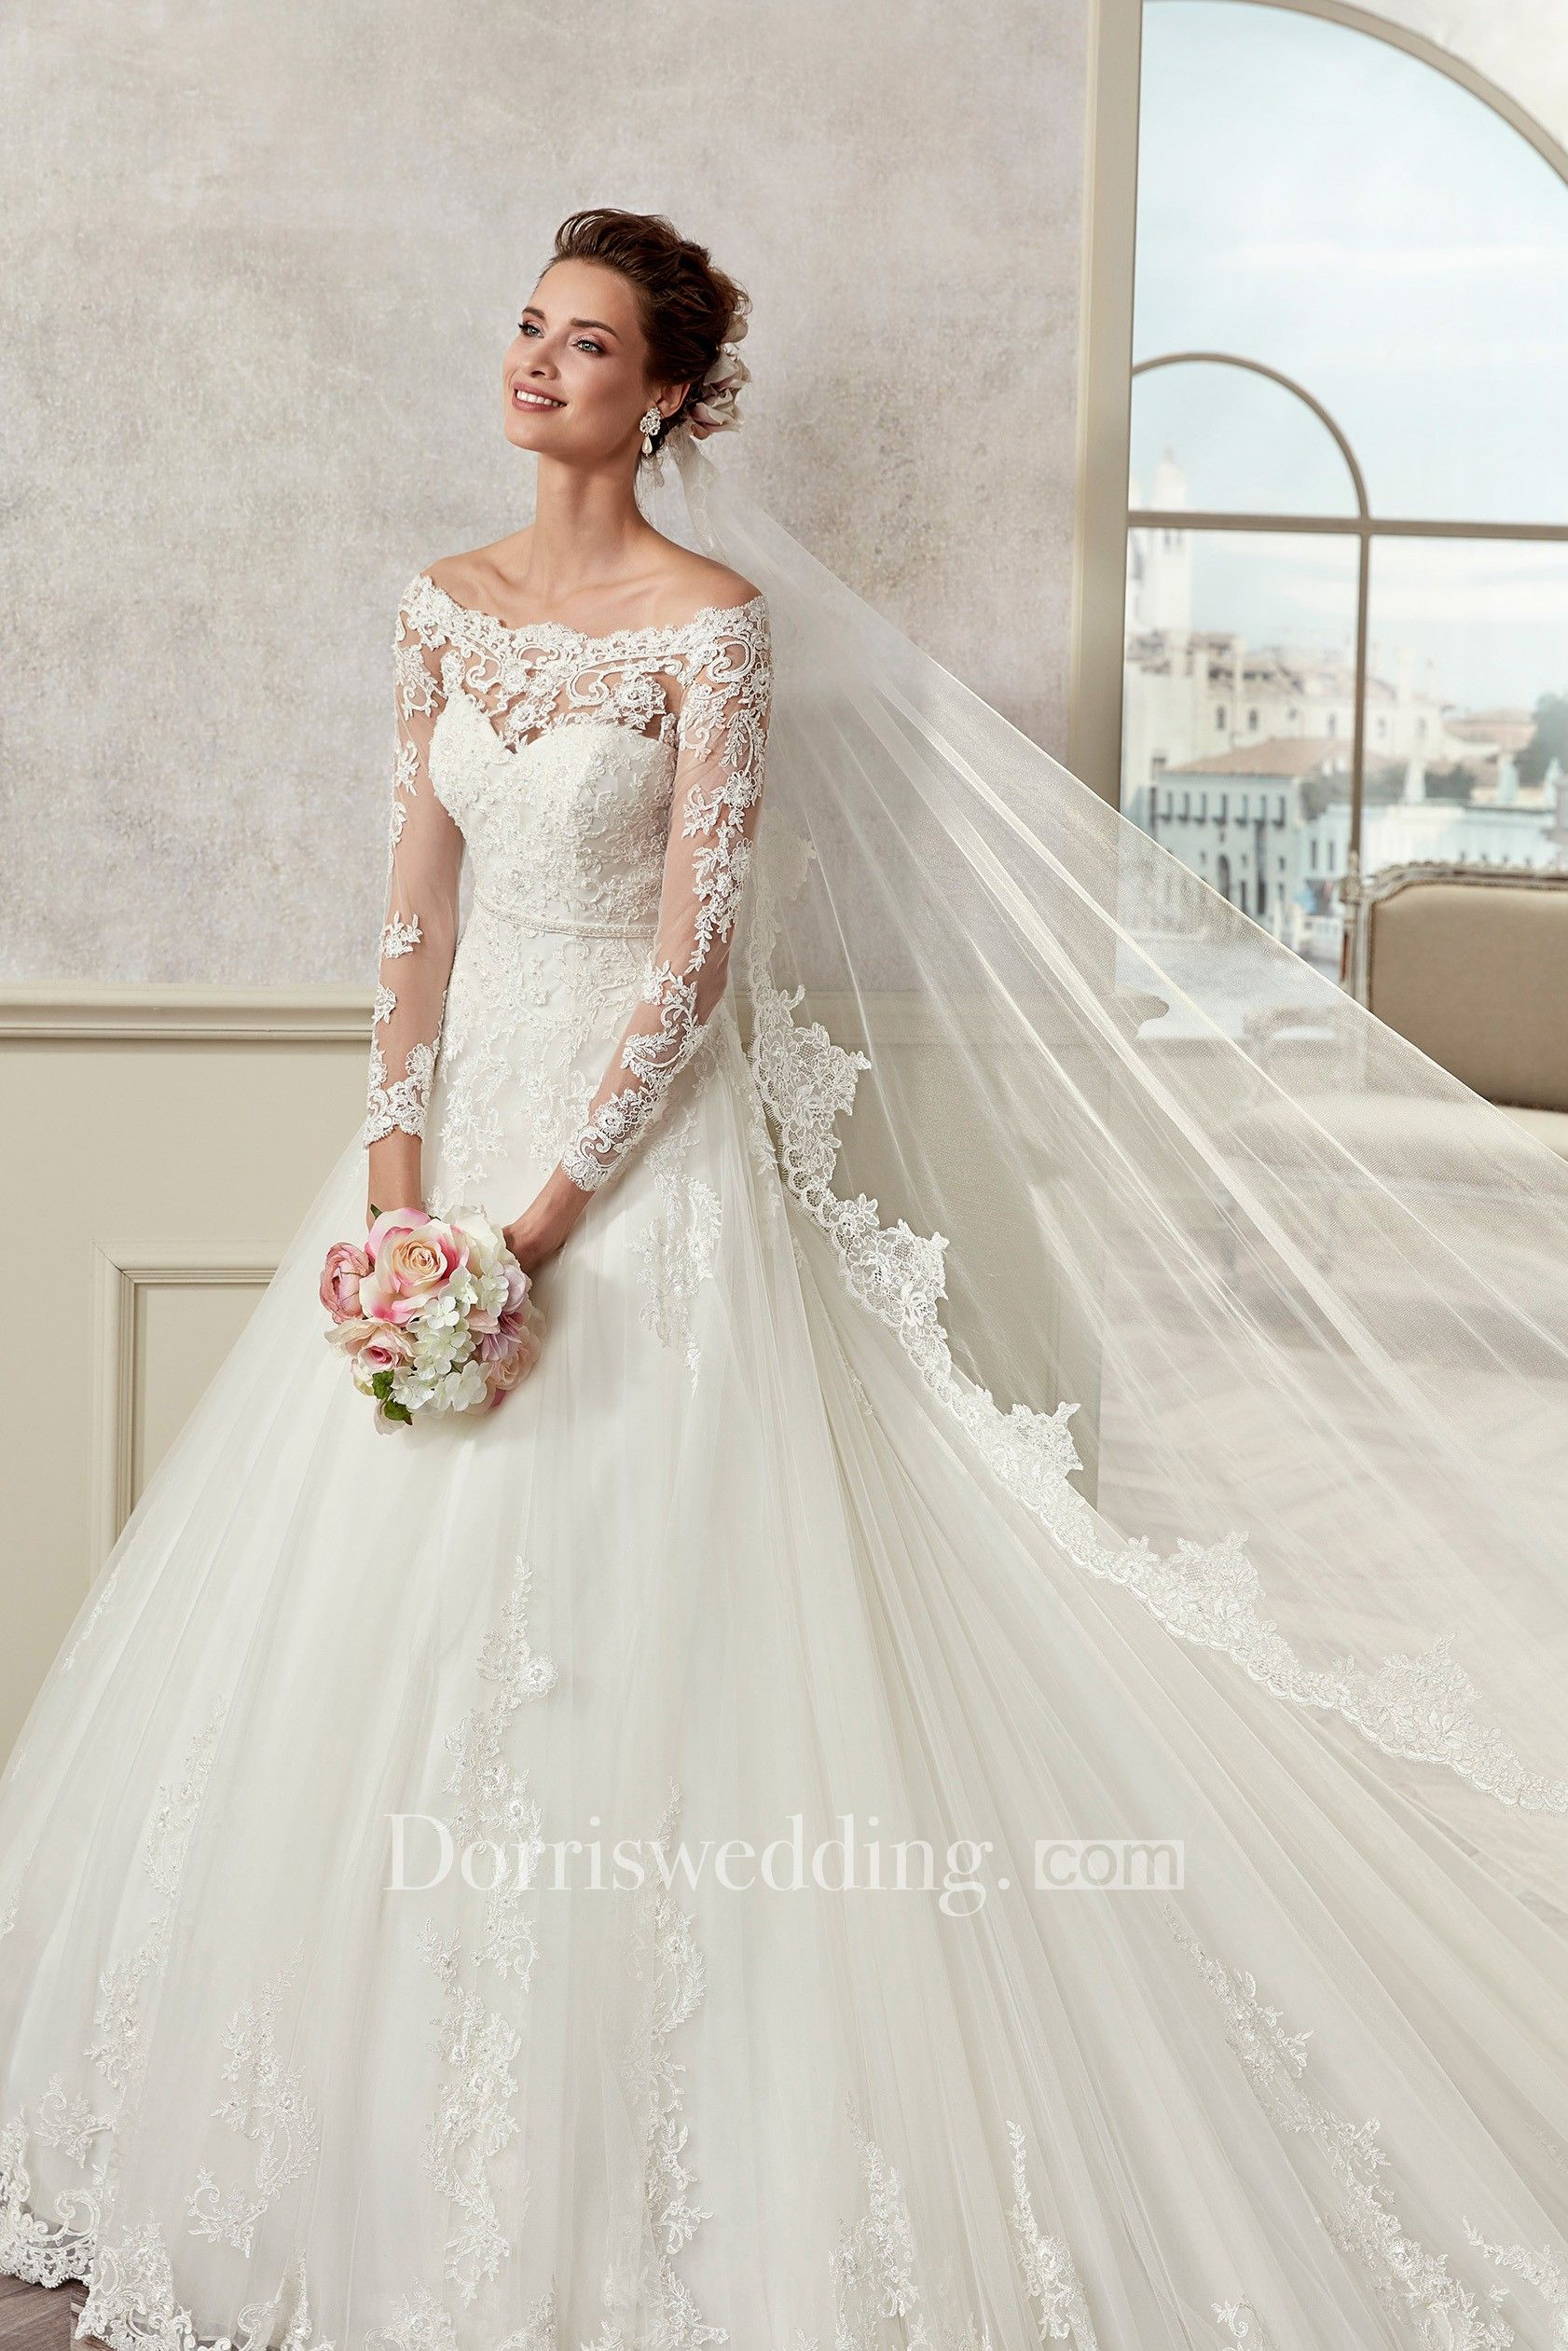 Off Shoulder Long Sleeve A Line Bridal Gown With Illusive Design And Brush Train A Line Wedding Dress A Line Bridal Gowns Winter Wedding Dress